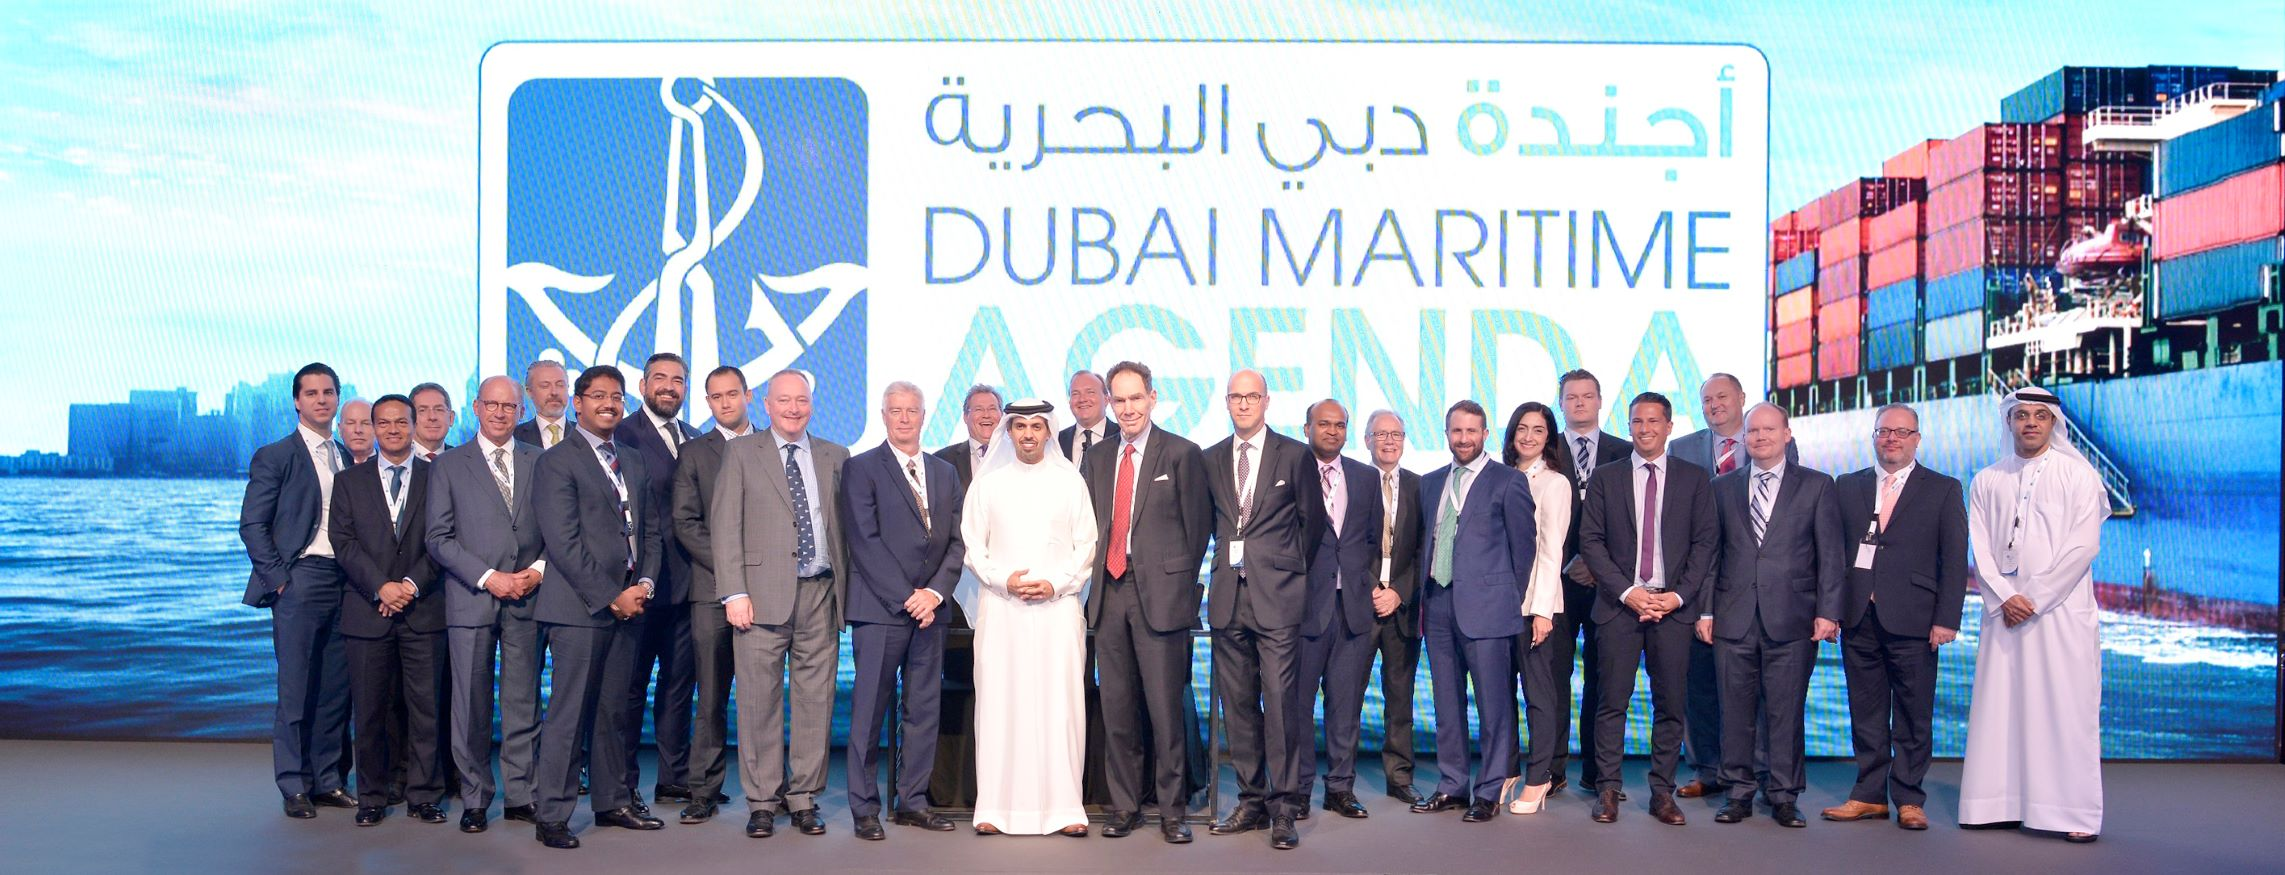 Dubai Maritime Agenda to host global industry leaders during